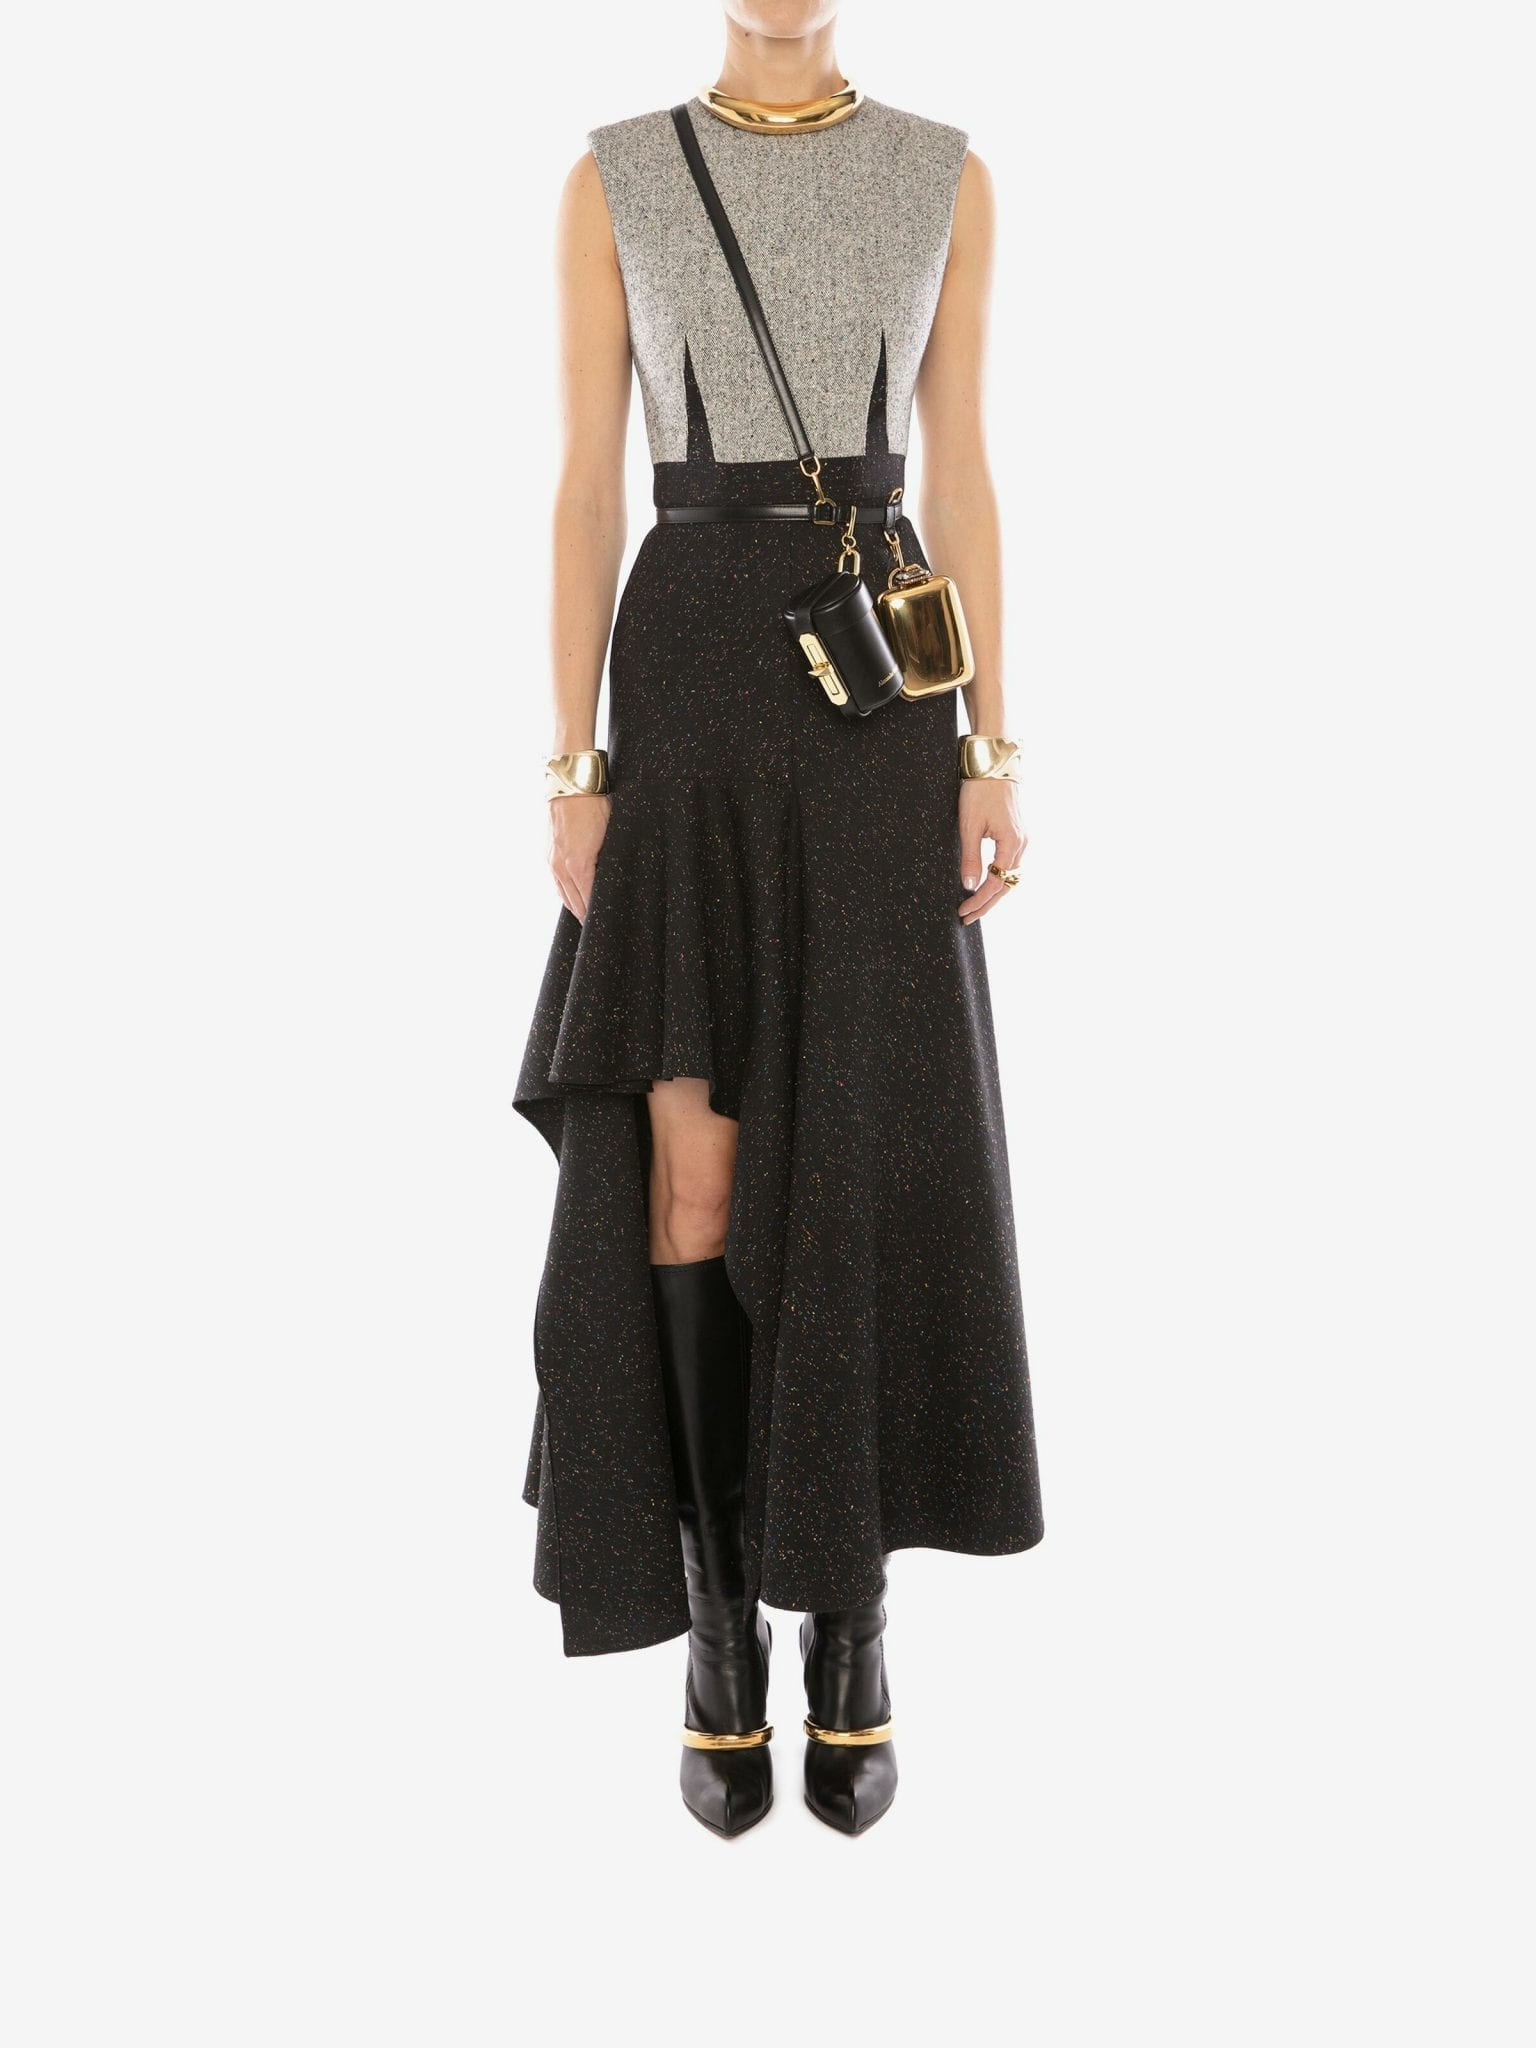 ALEXANDER MCQUEEN Donegal Drape Midi Dress